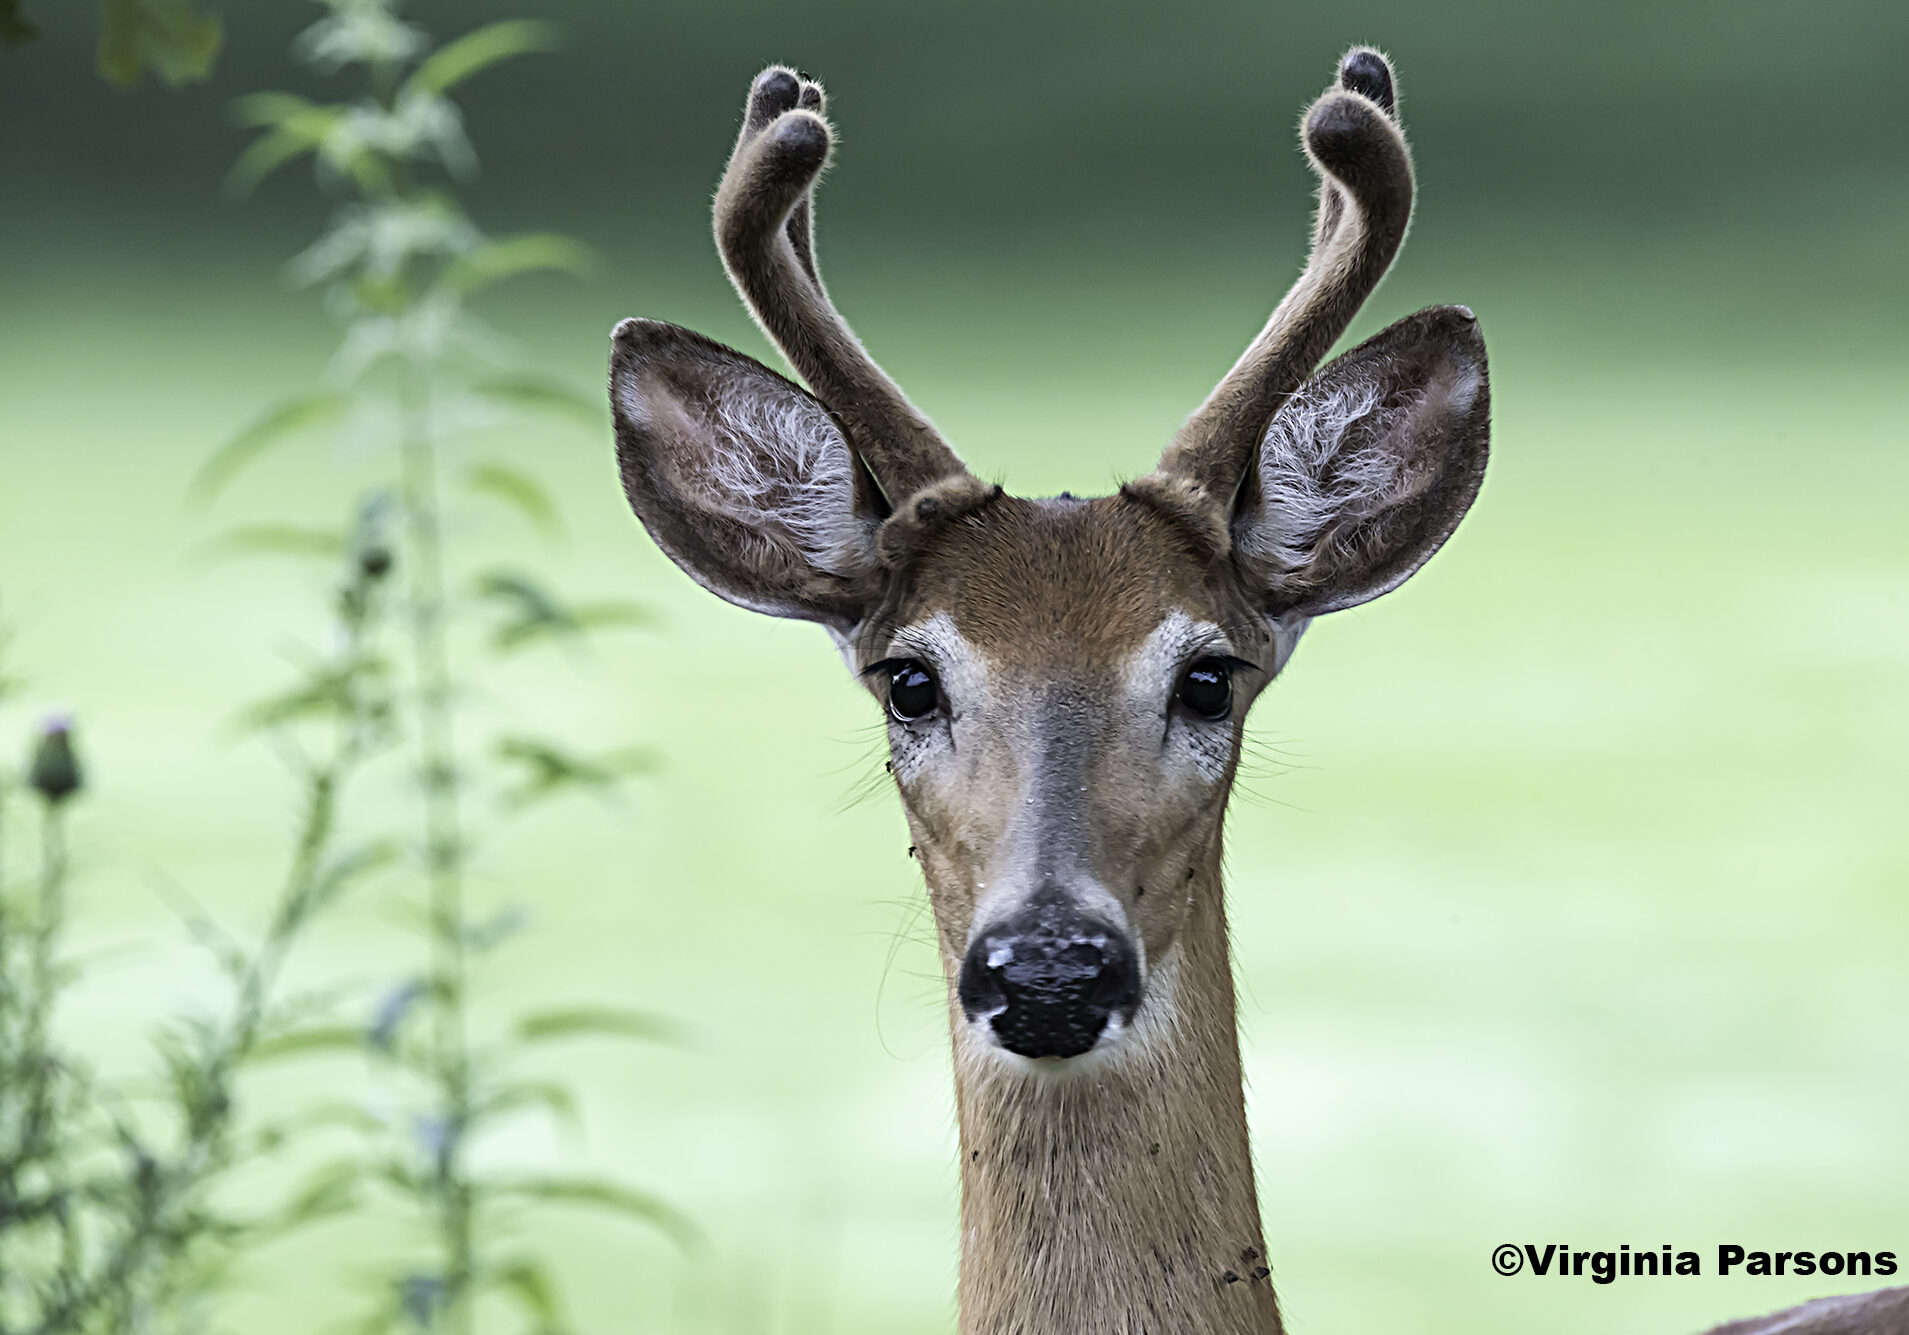 A young buck looks into the camera